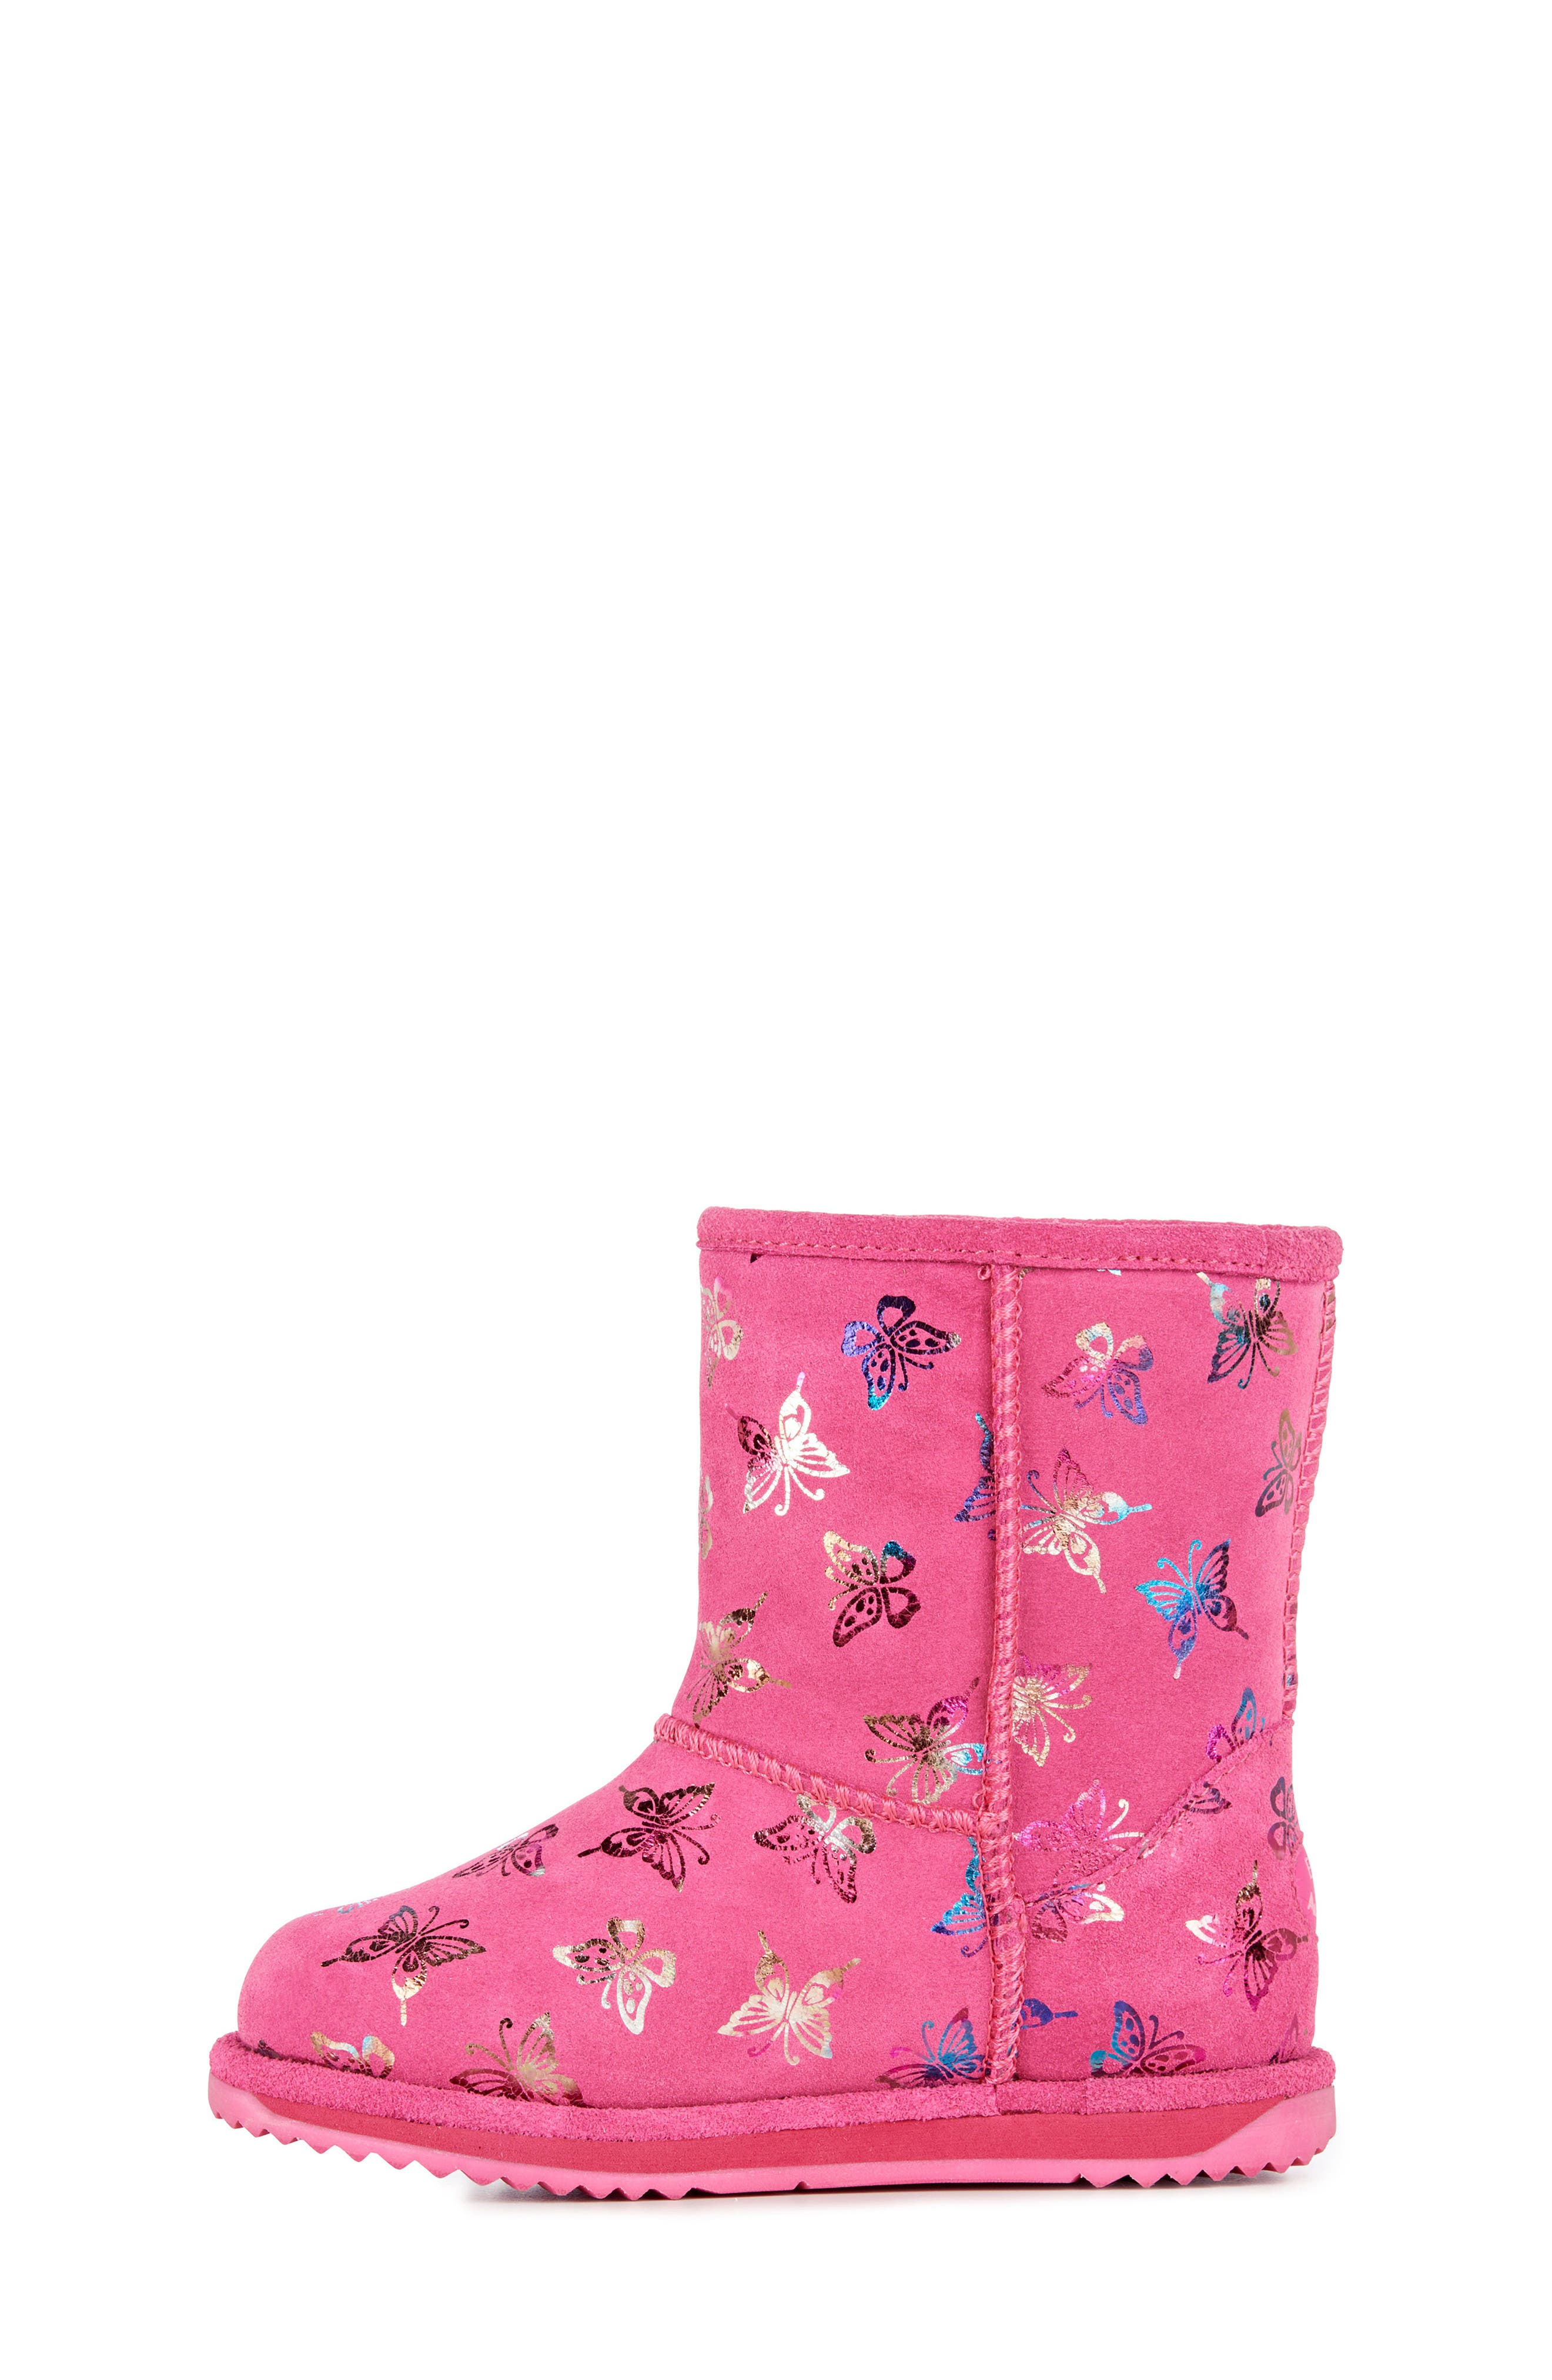 Animal Print Boots,                             Alternate thumbnail 6, color,                             HOT PINK